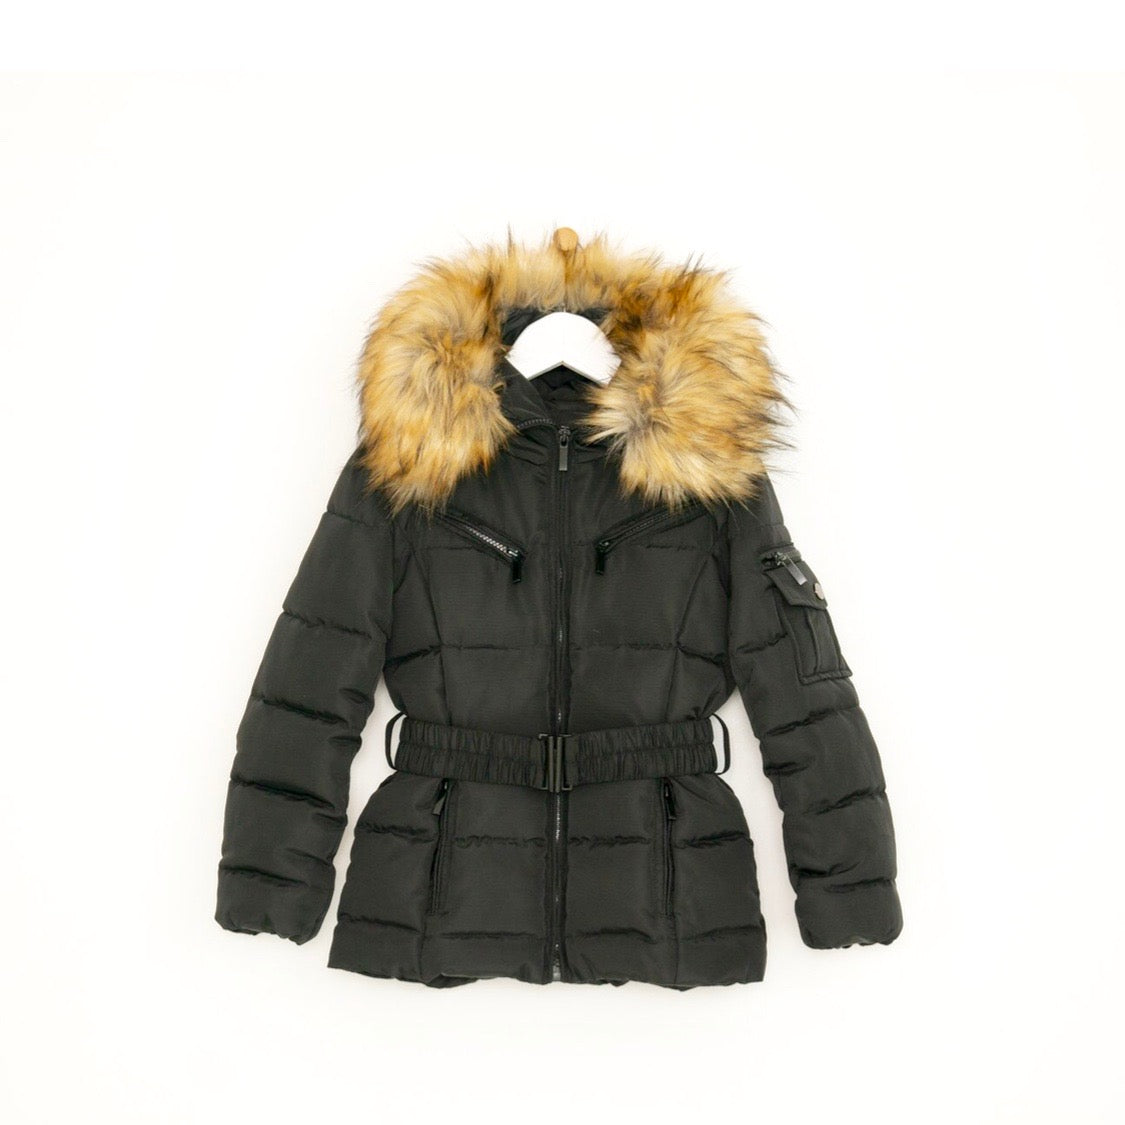 Girls belted luxury padded winter coat in black faux fur hood